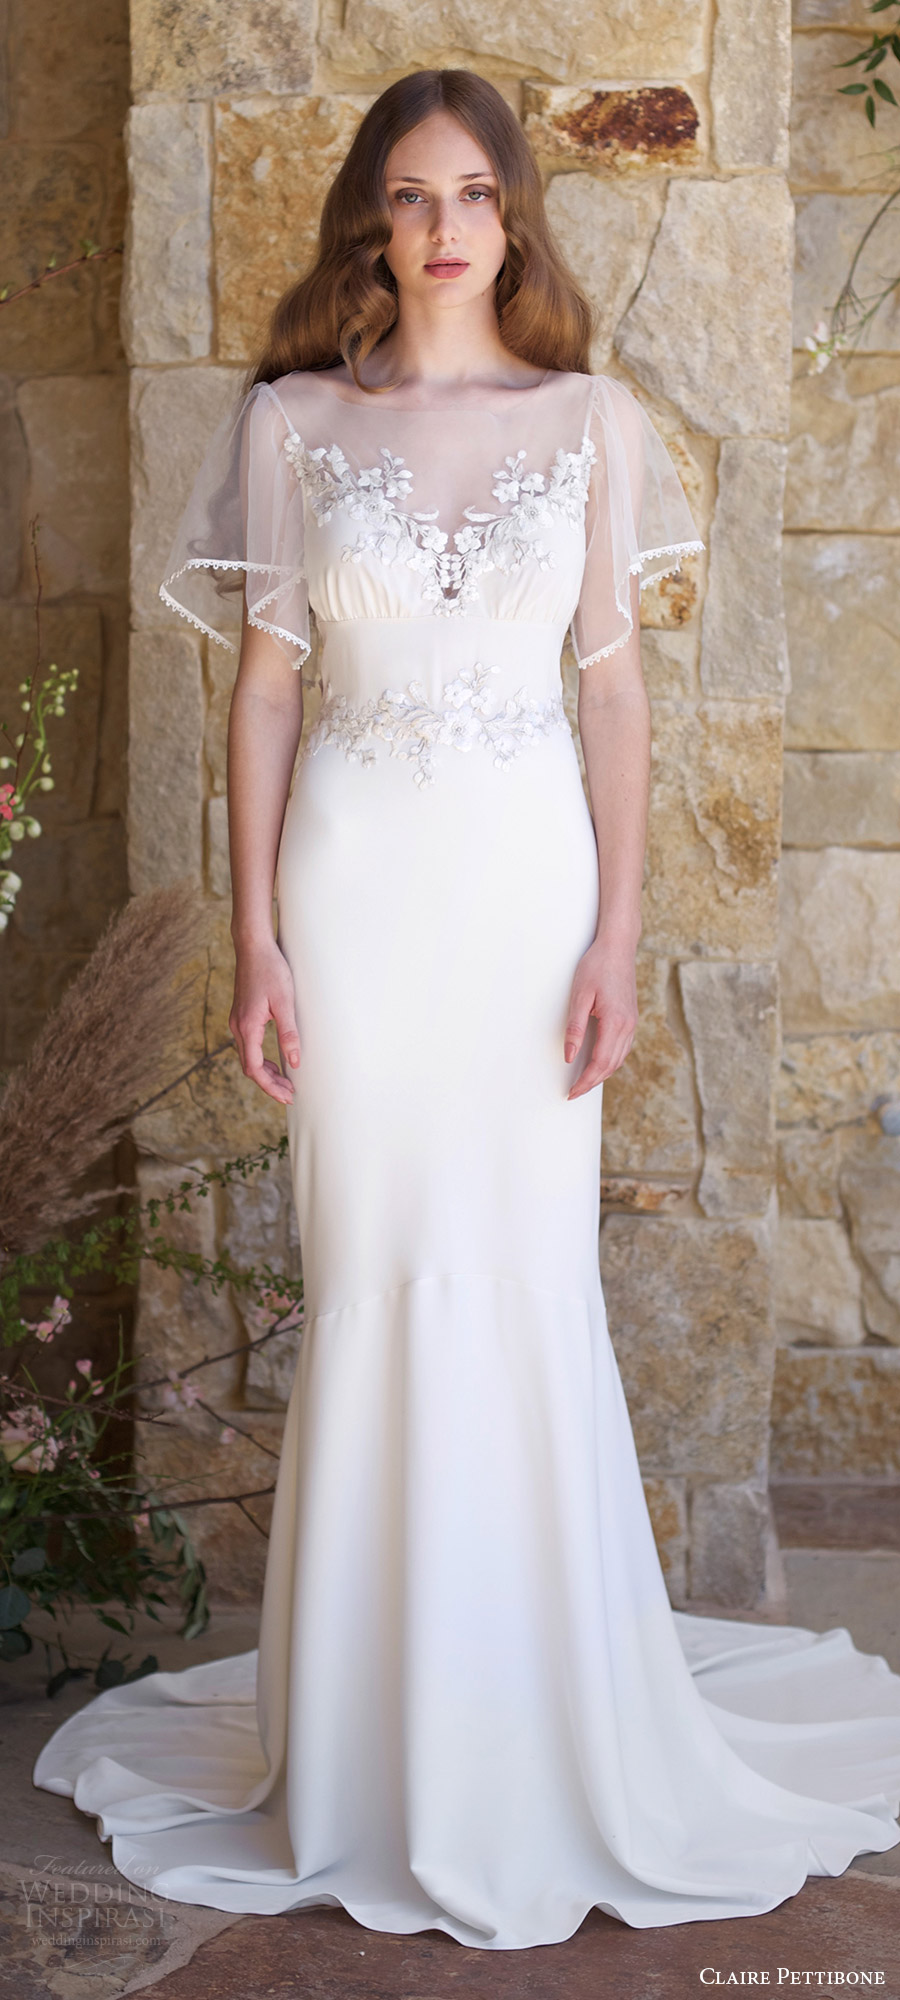 claire pettibone spring 2018 bridal illusion flutter sleeves sheer bateau neck embroidered bodice sheath wedding dress (merlot) mv train boho romantic